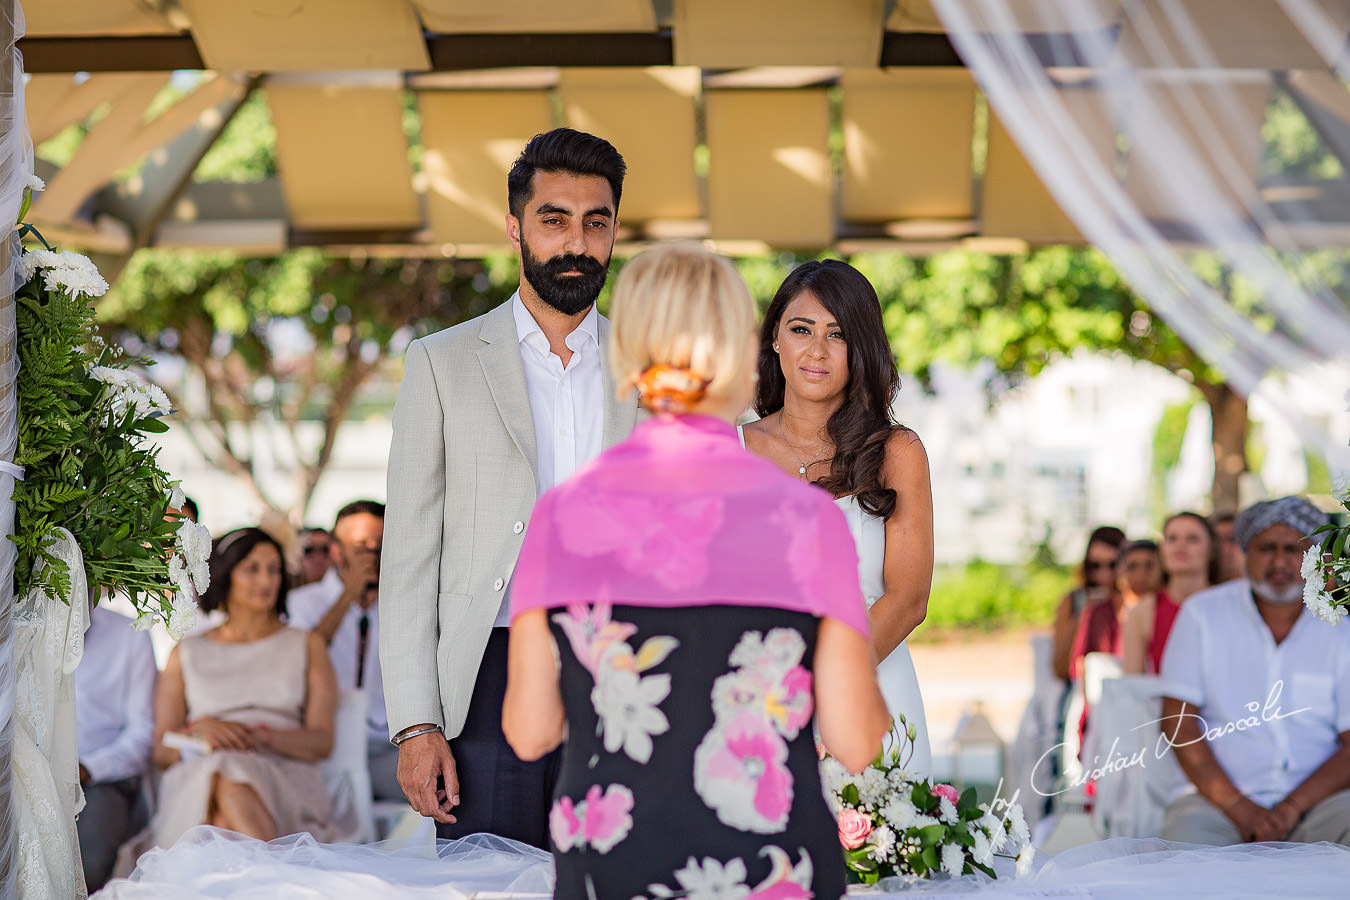 Bride and groom in front of the celebrant, moments photographed by Cristian Dascalu at Athena Beach Hotel in Paphos, Cyprus, during a symbolic wedding.